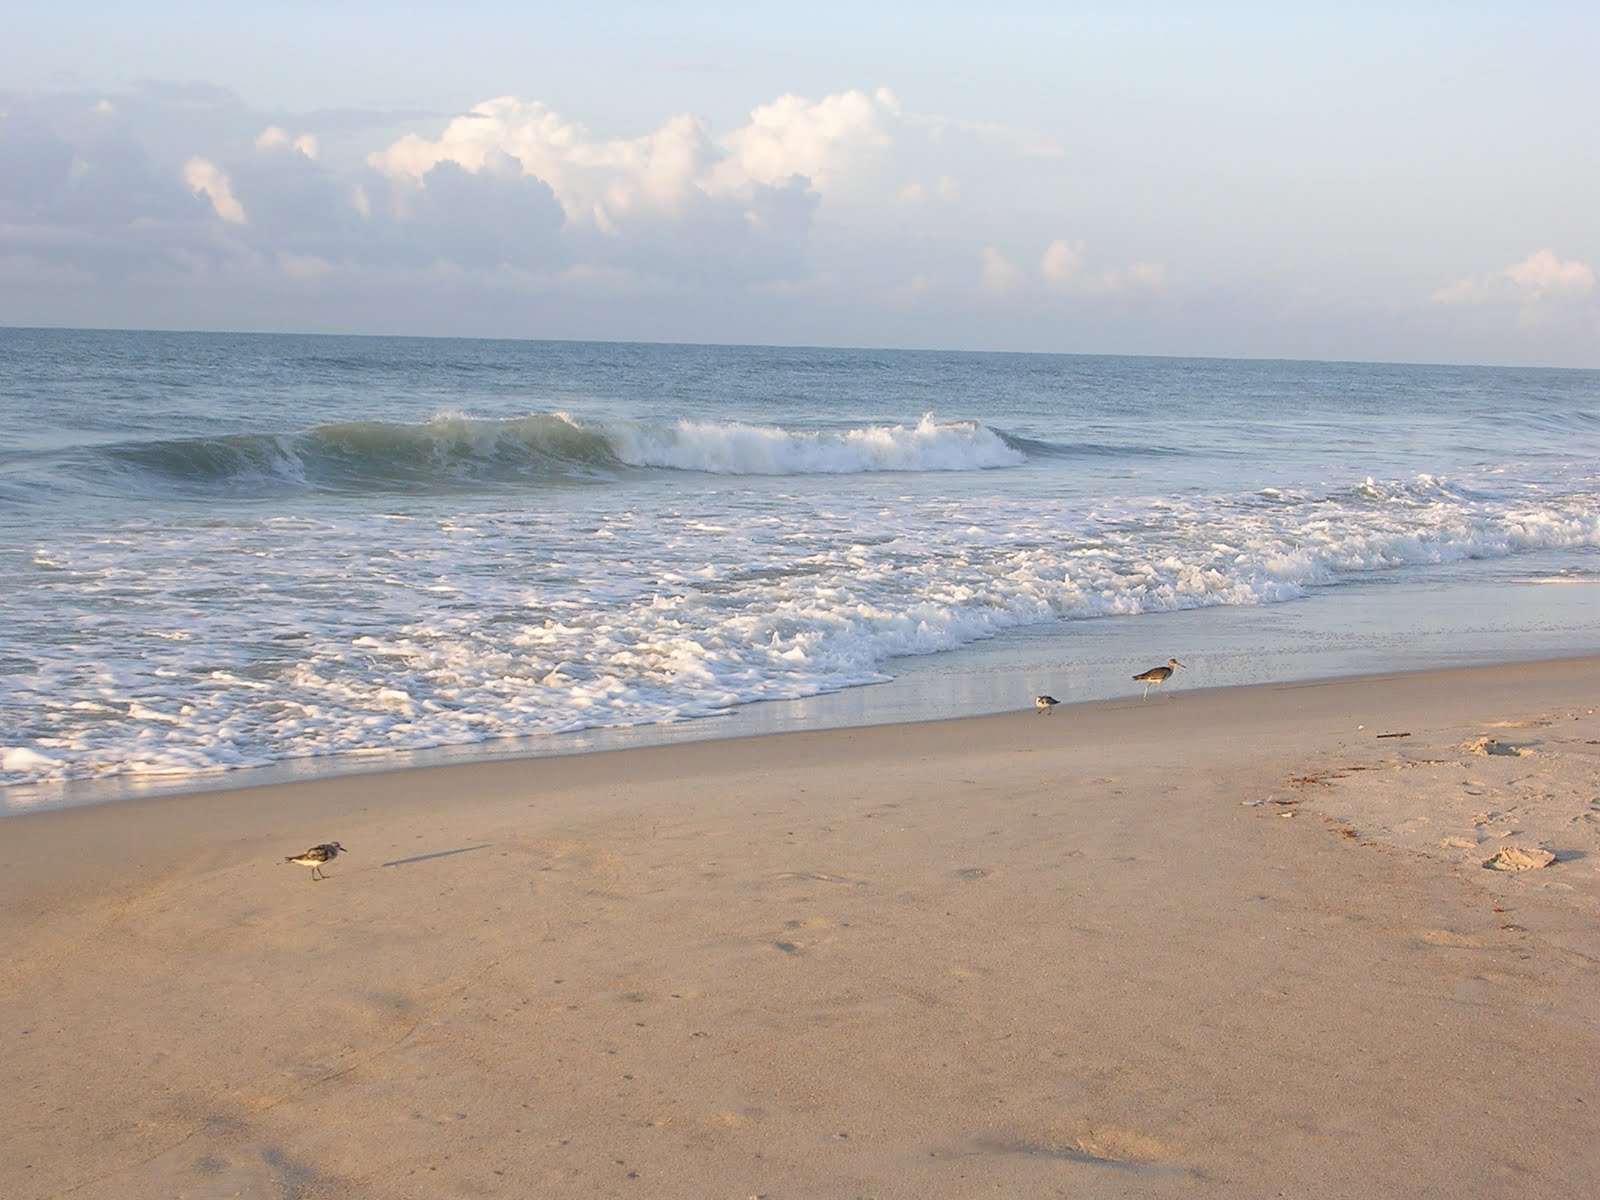 North Carolina Beaches Best Beaches in North Carolina Uptake